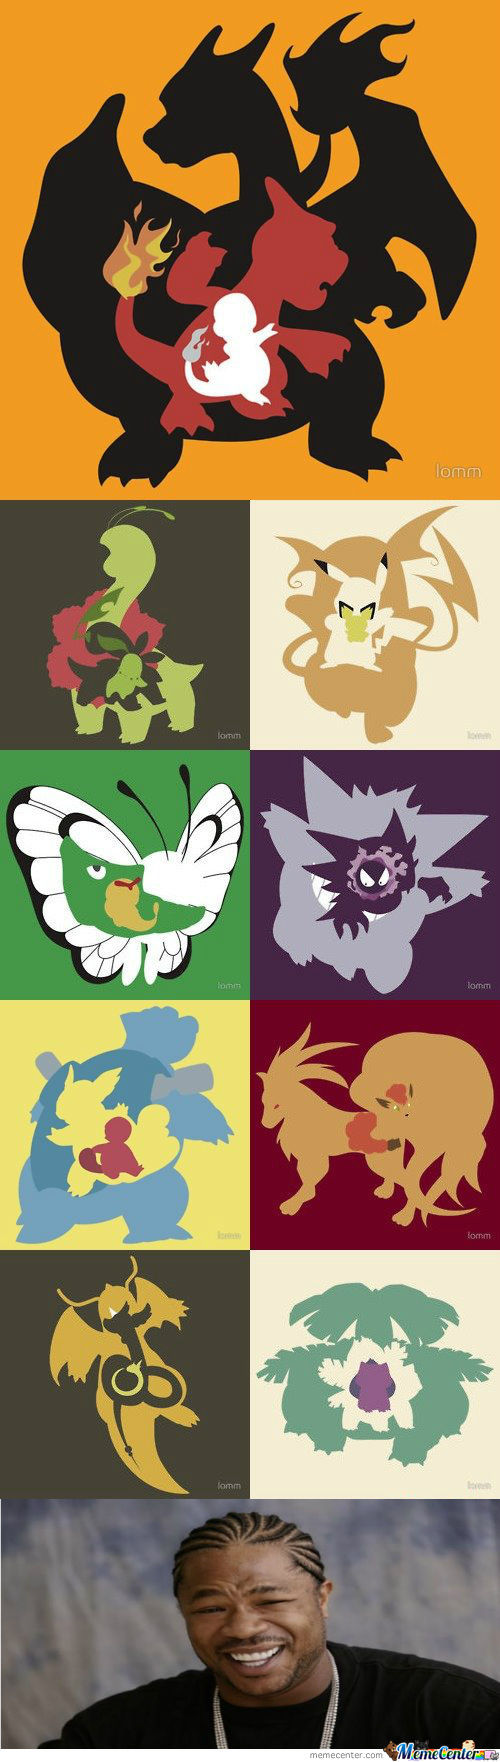 [RMX] Evolution of most liked pokemons